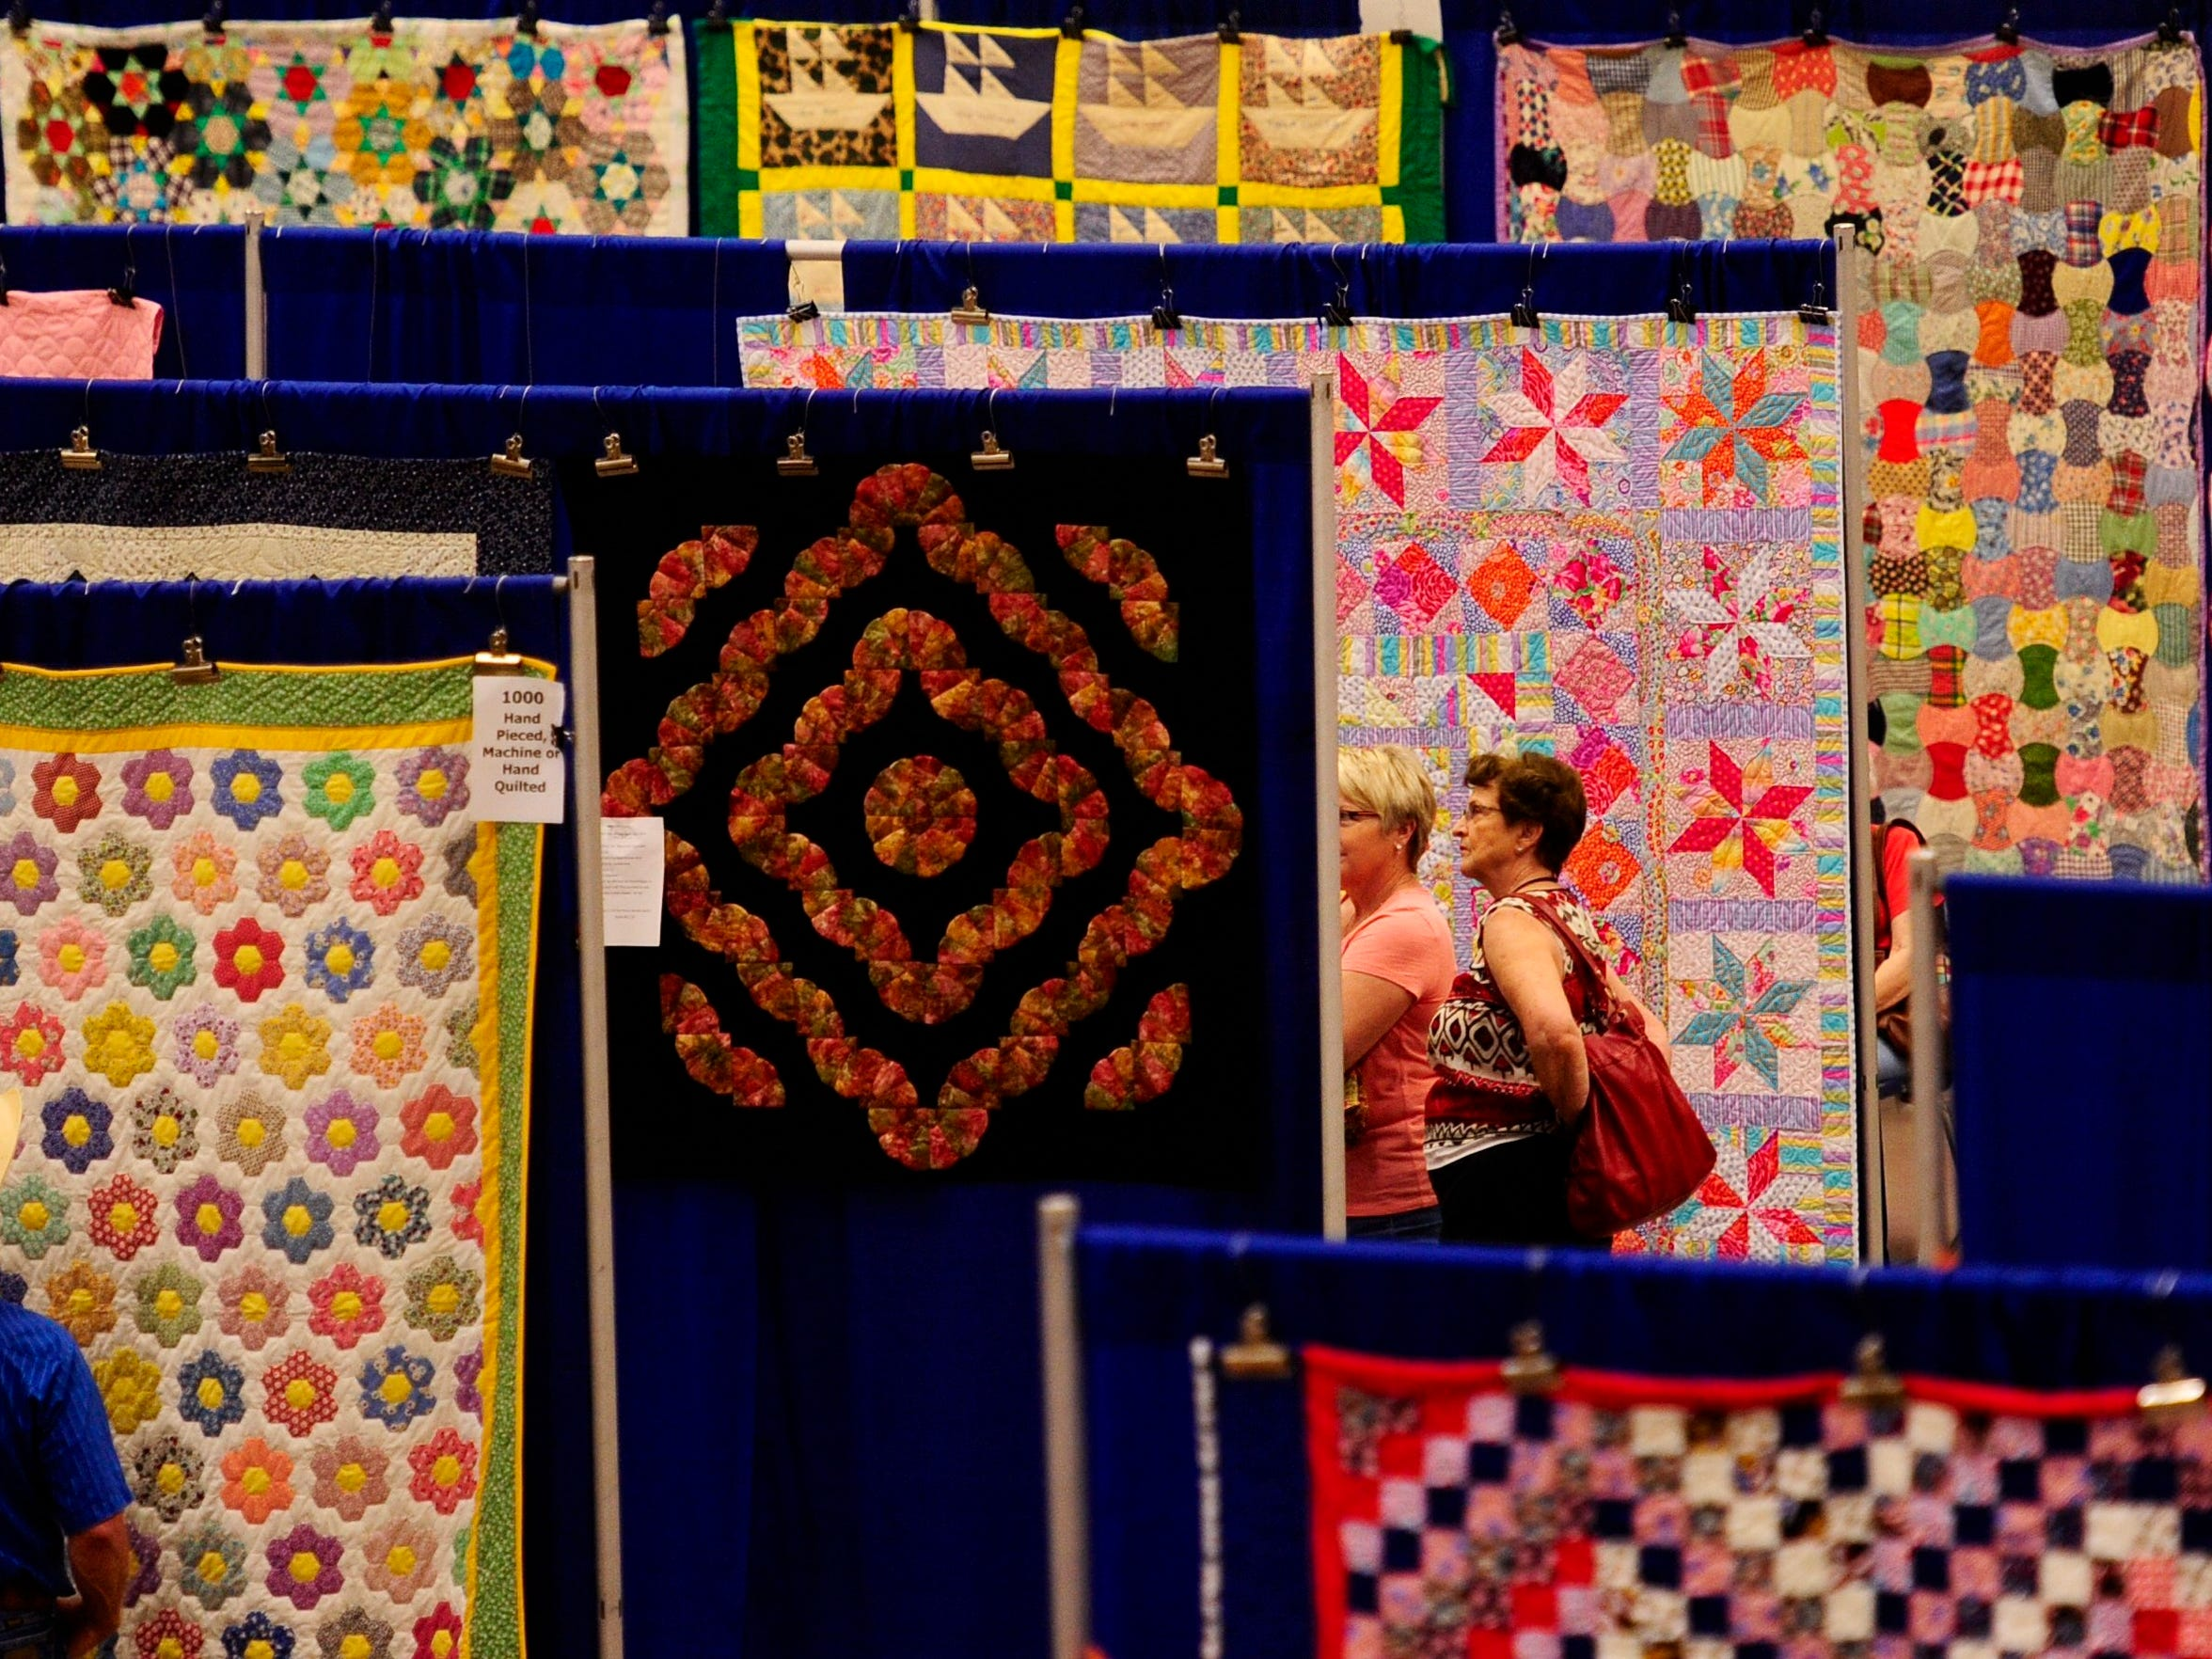 Attendees check out the quilts on display at the Stars Over Abilene Quilt Show in 2014, at the Abilene Civic Center.